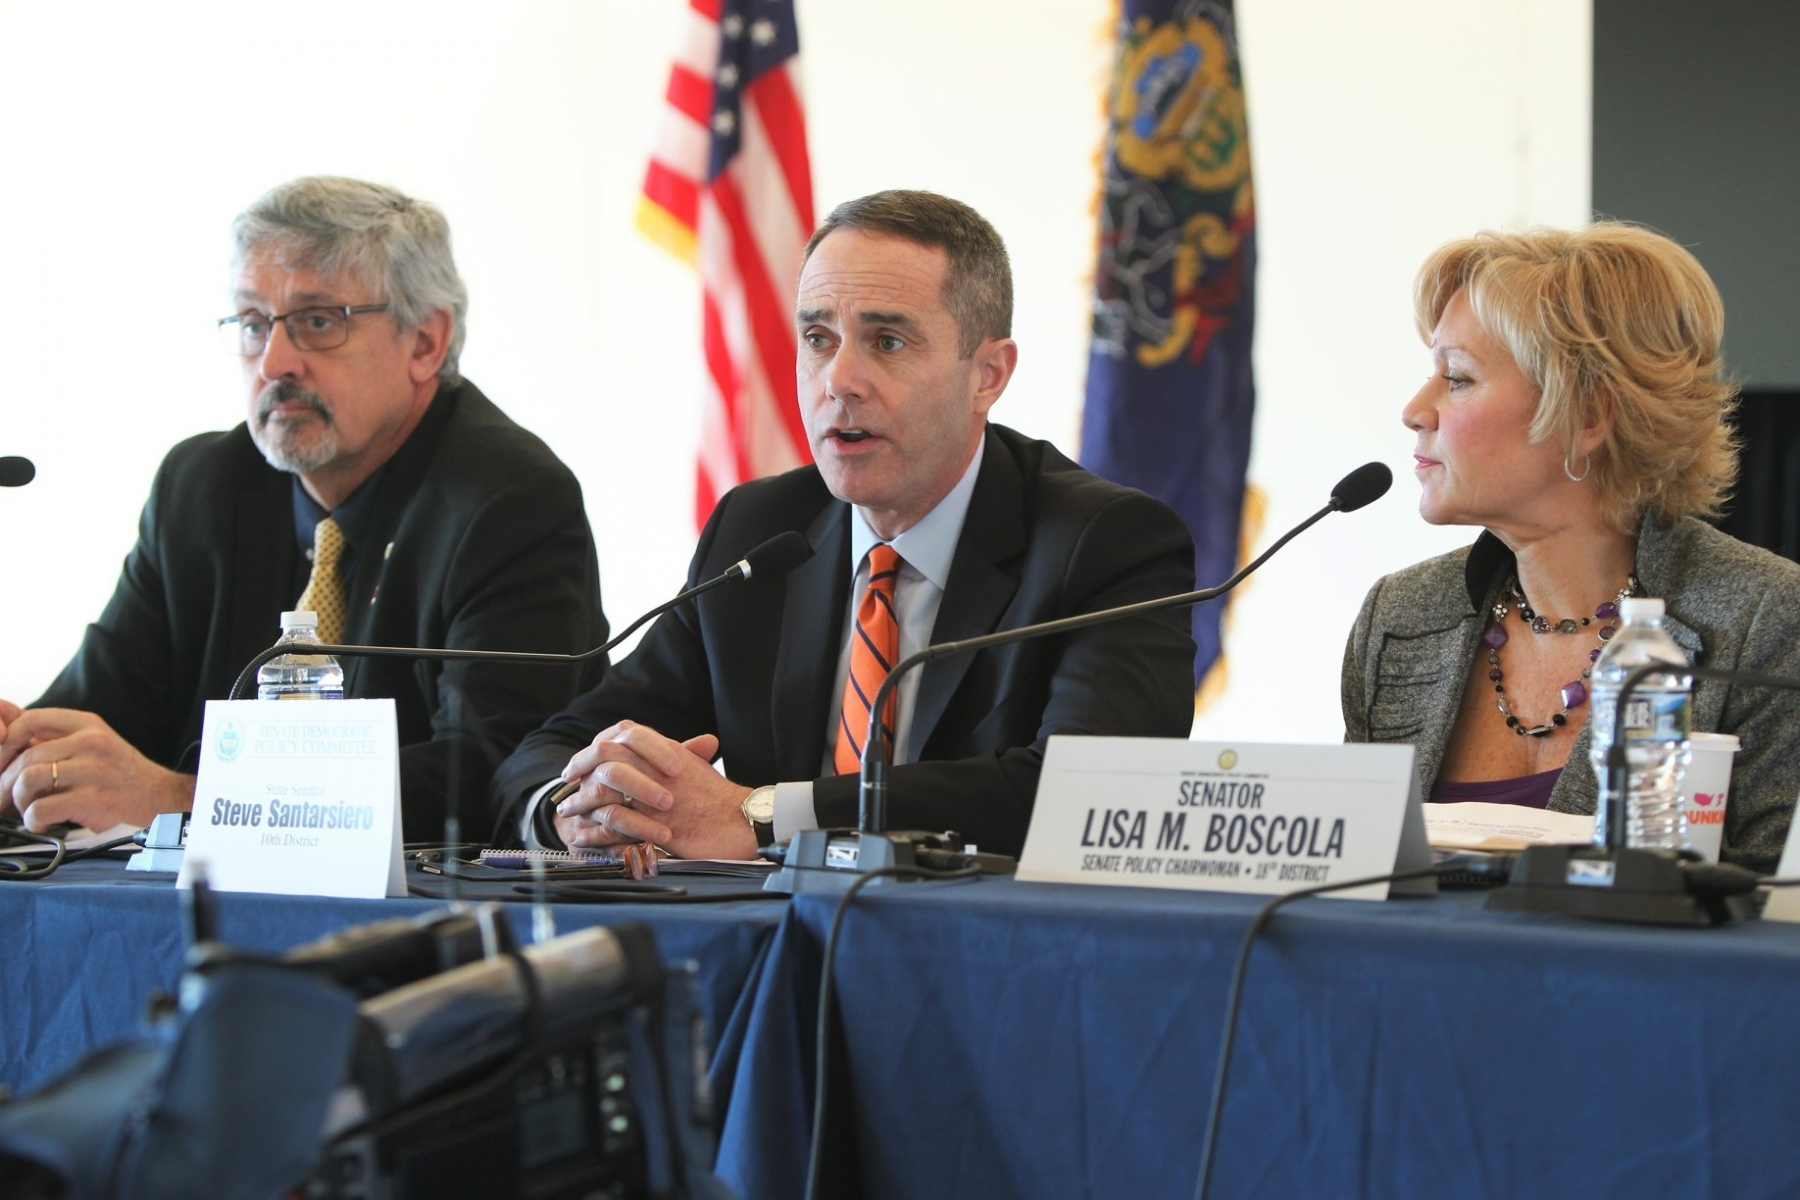 February 14, 2019 – Senator Steve Santarsiero participates  in the state Senate Democratic Policy Committee hearing on ways to prevent gun violence in Pennsylvania.